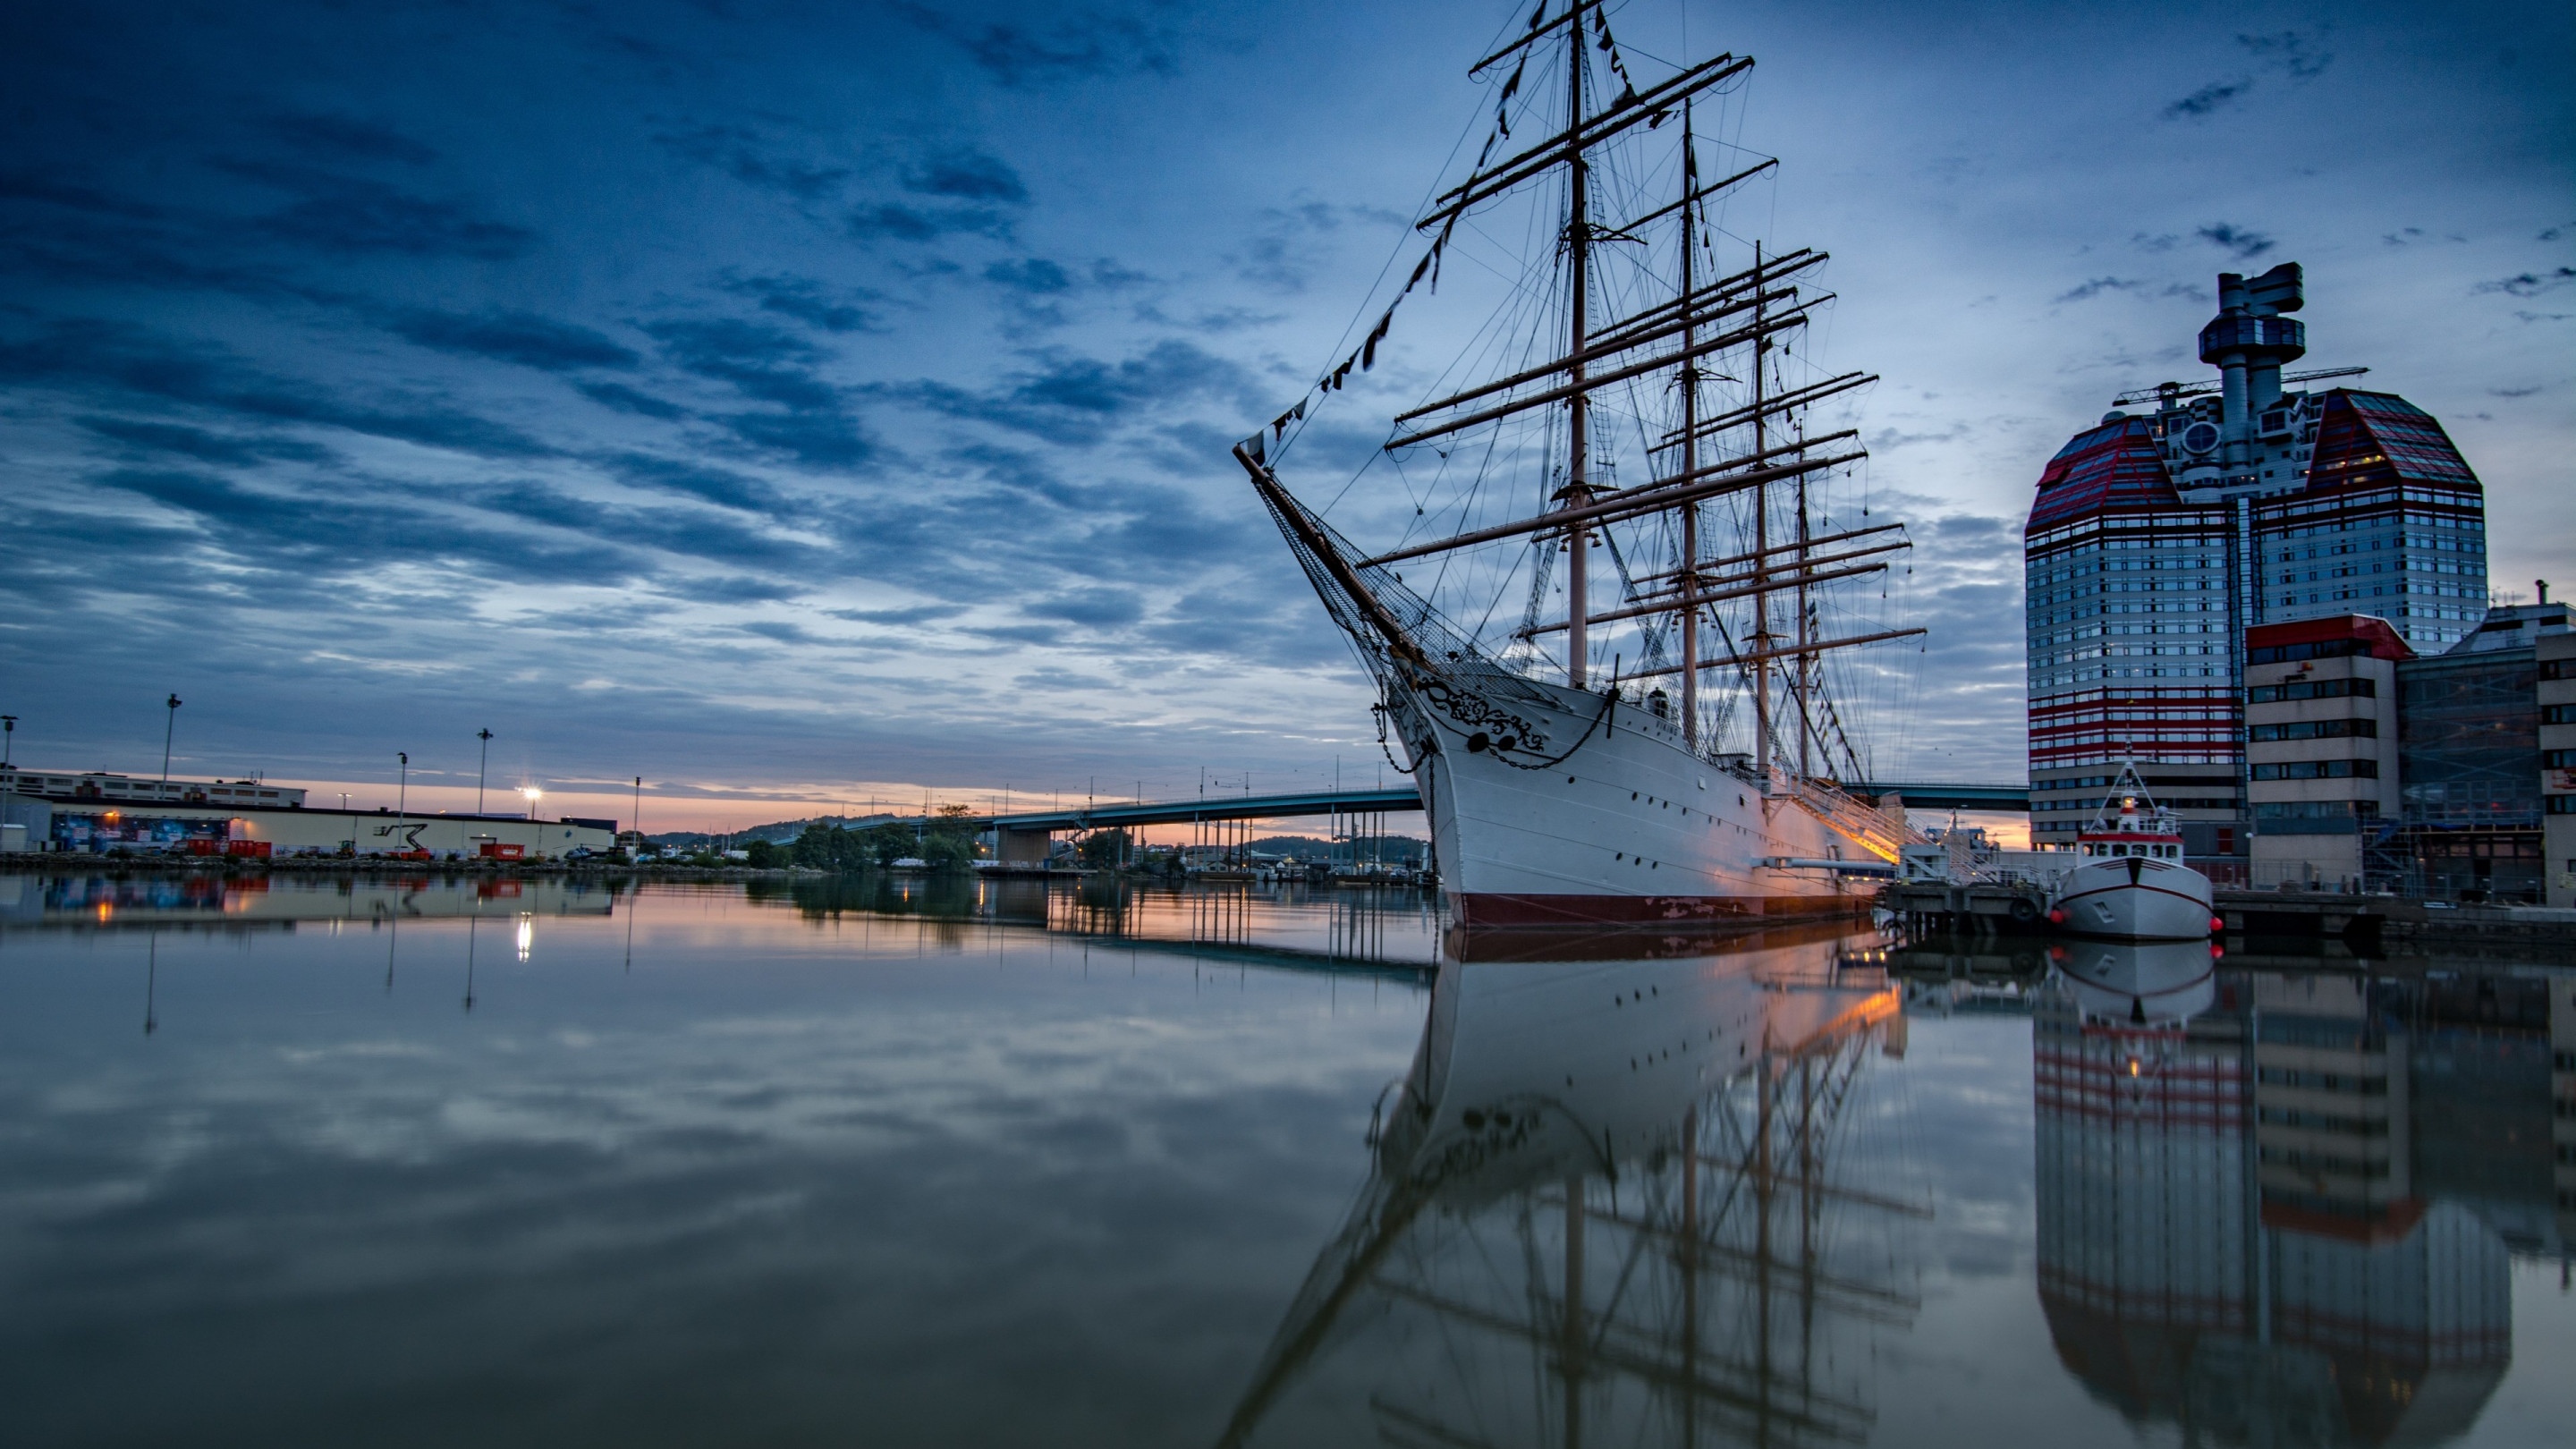 Historic wooden sailing ship in Gothenburg Harbour | 2880x1620 wallpaper